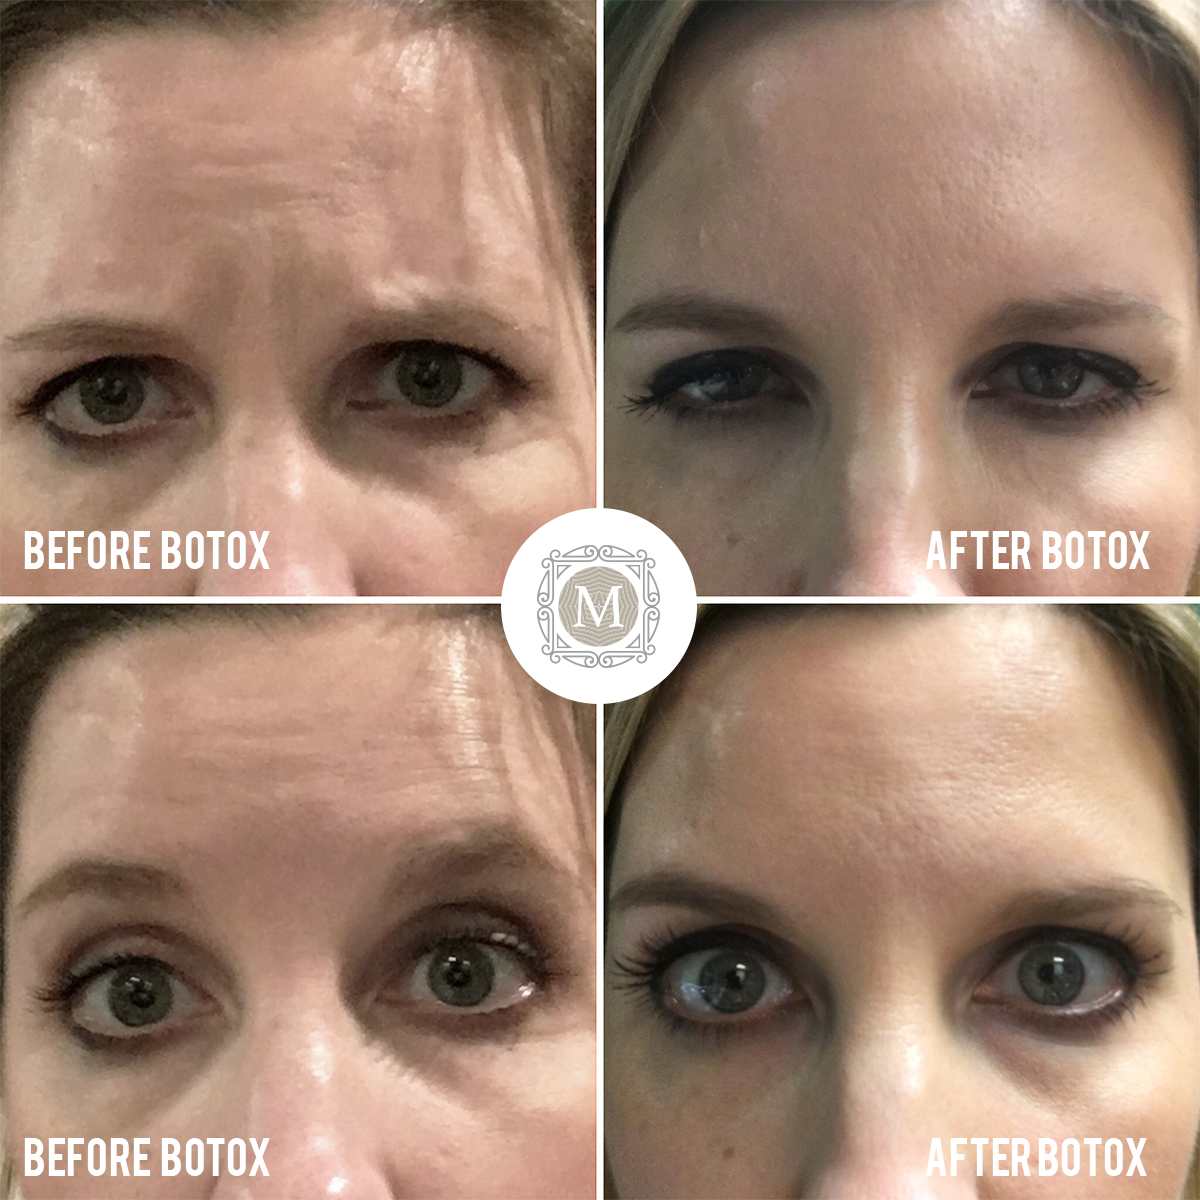 This Patient Had 40 Units Of Botox For Forehead Wrinkles Frown Lines Lines Between The Brow And Crows Feet Botox Forehead Hide Wrinkles Forehead Wrinkles